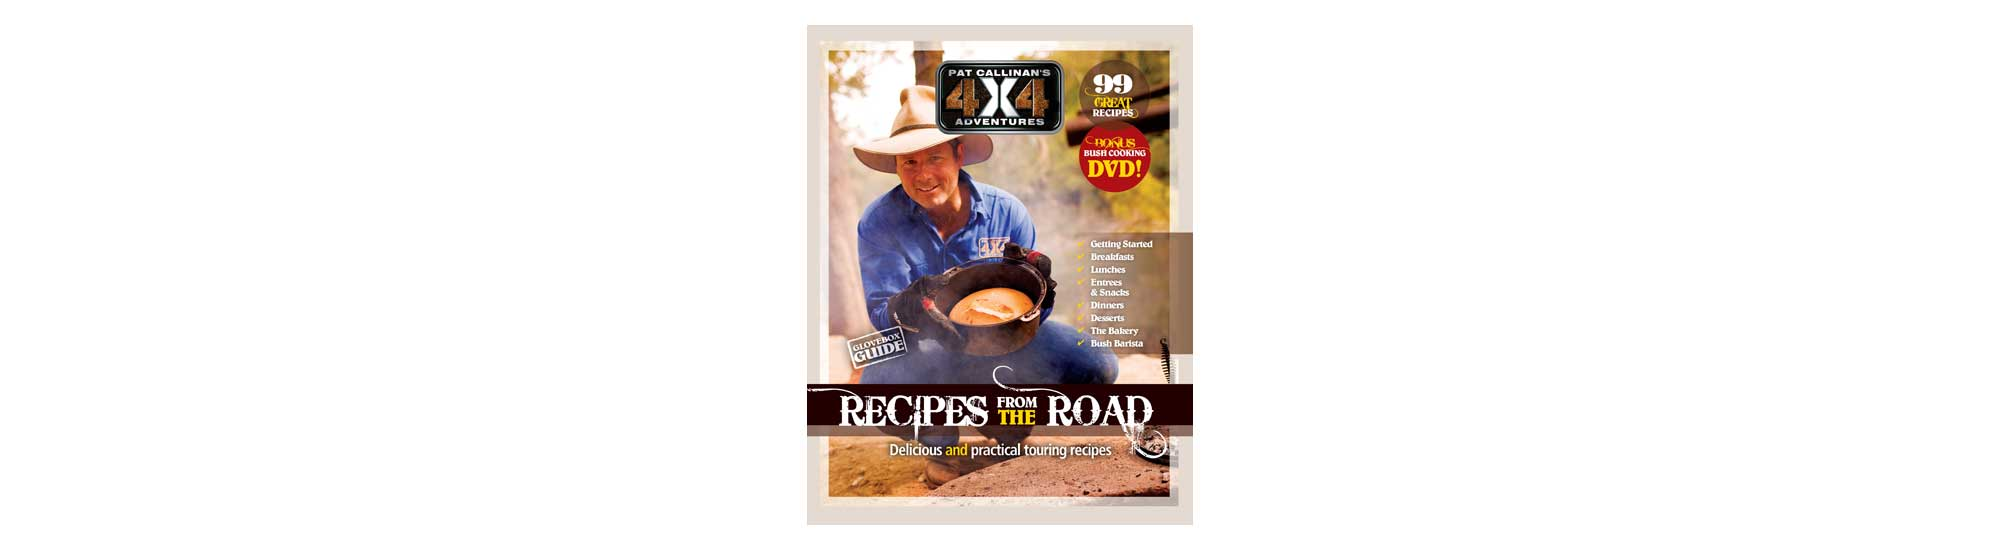 BOOK_Cookbook-Recipes-from-the-road